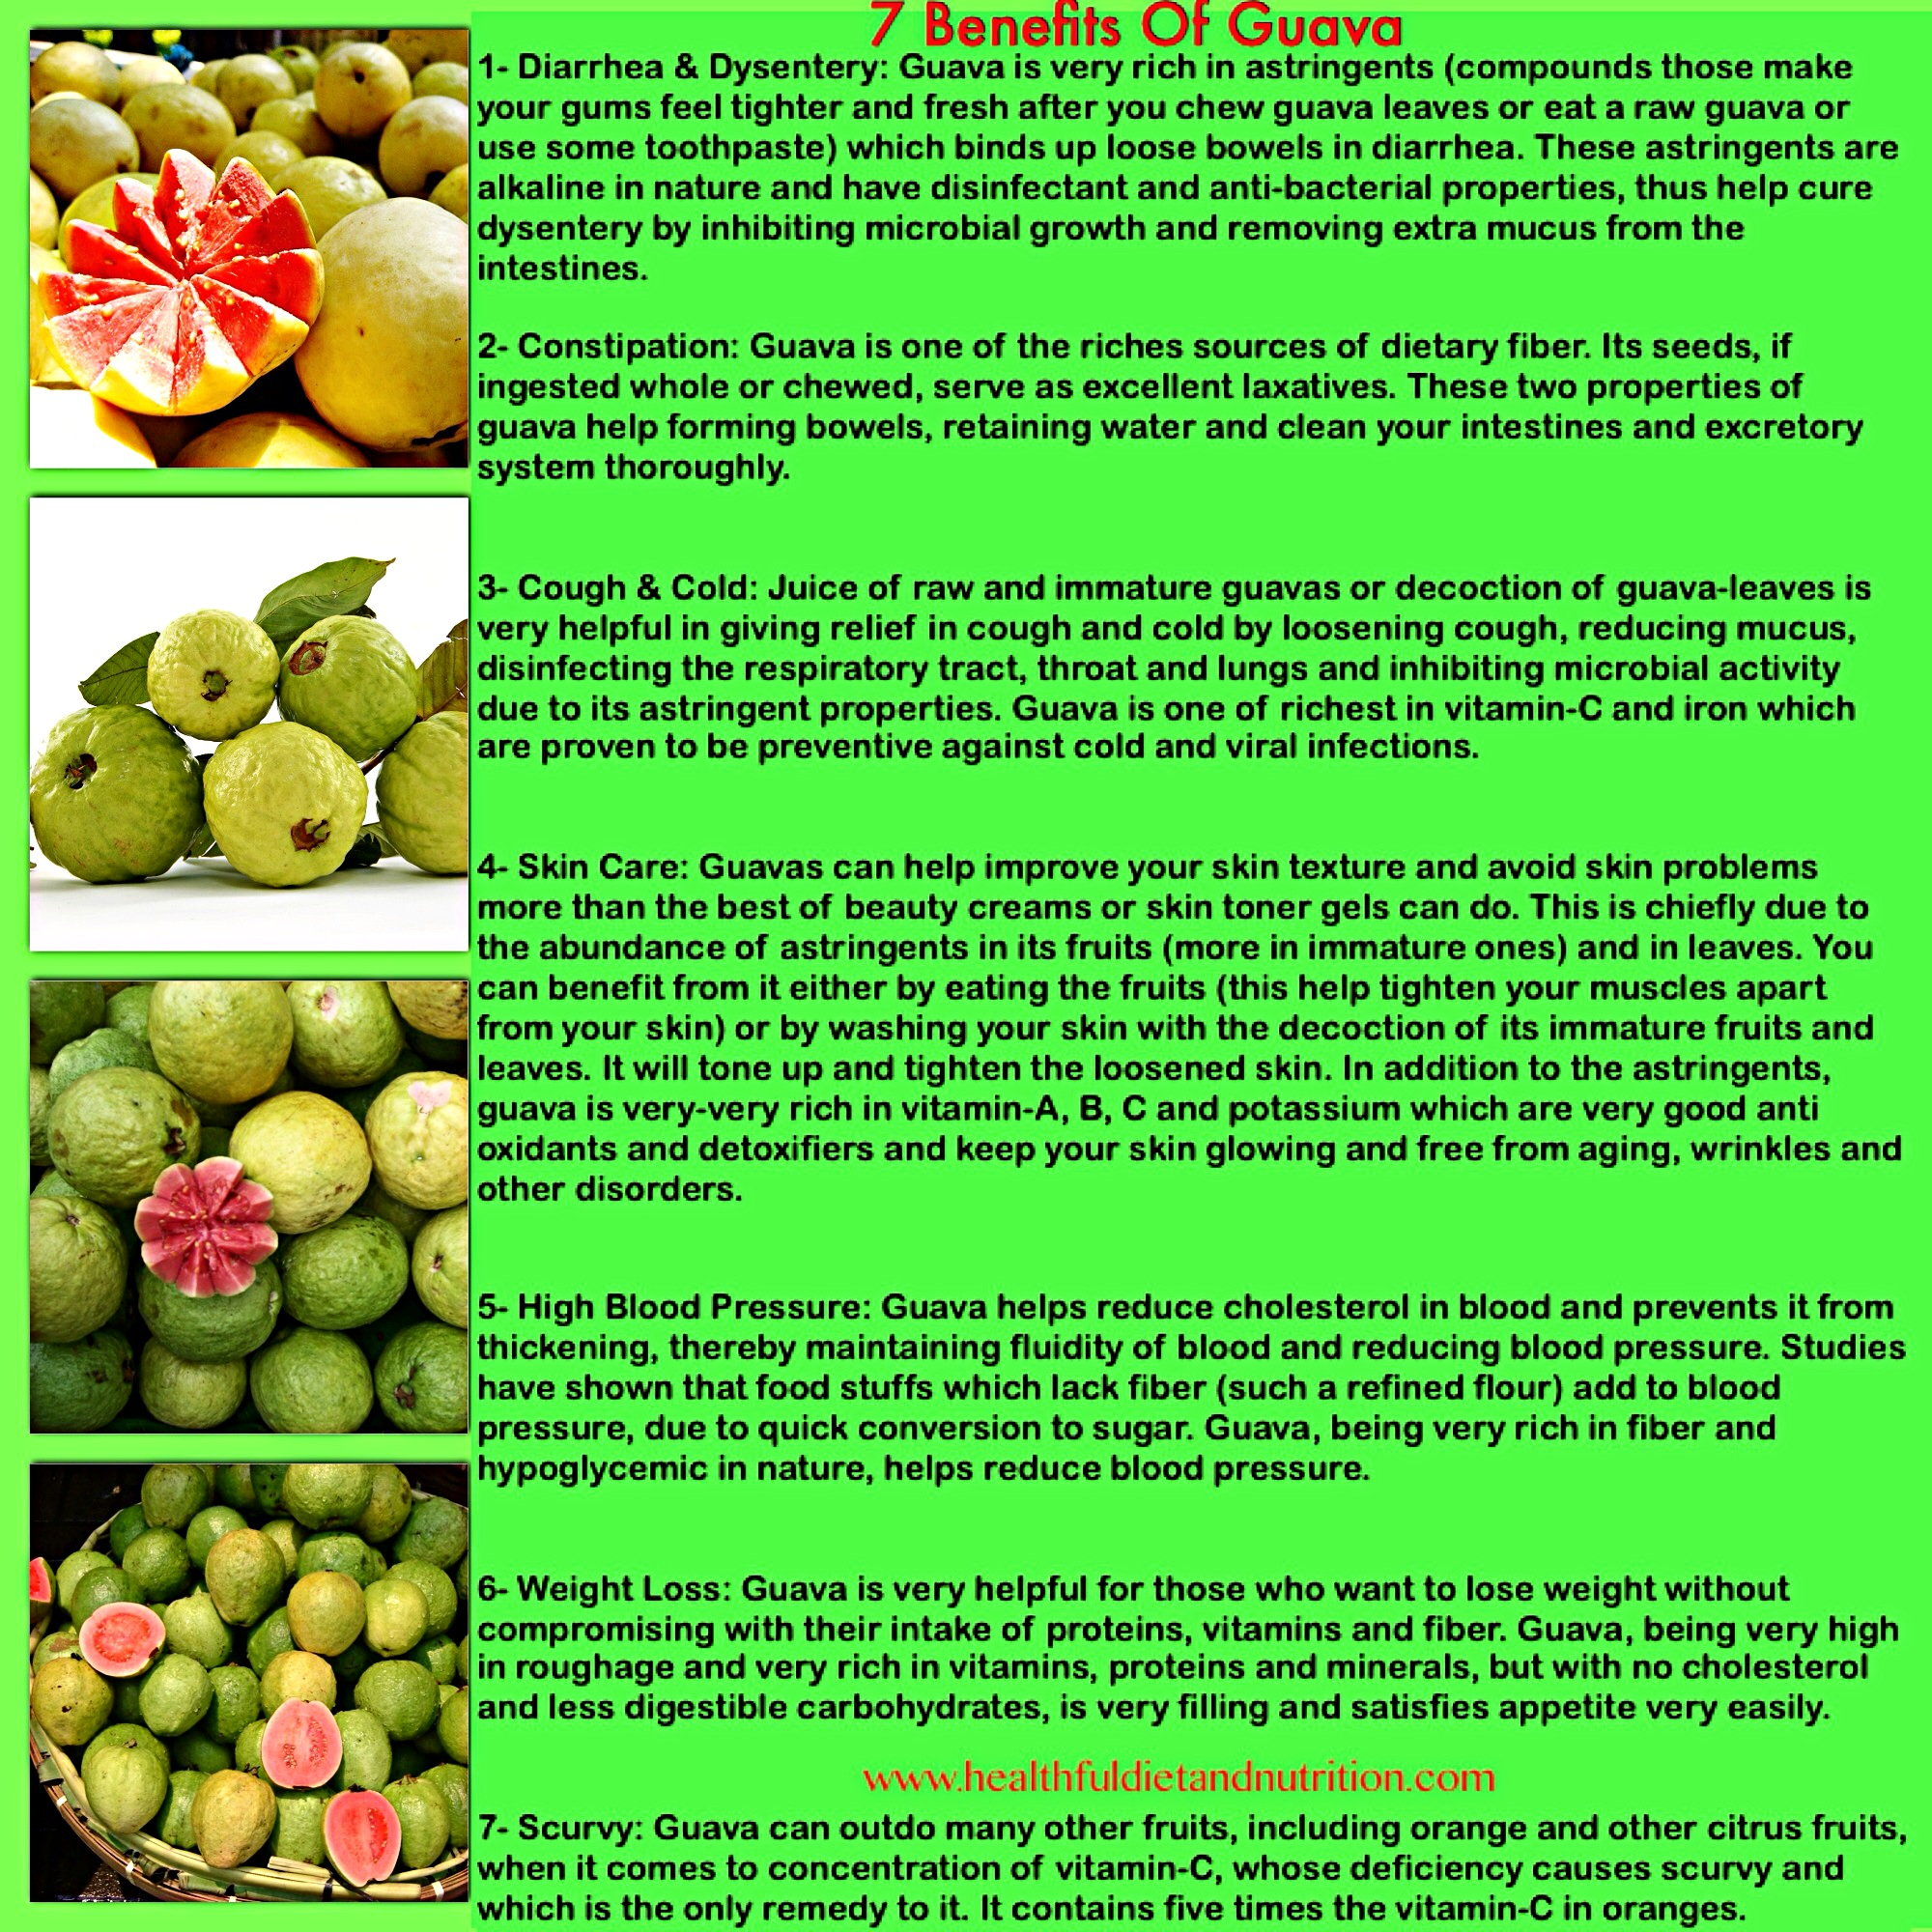 7 Health Benefits of Guava Fruit